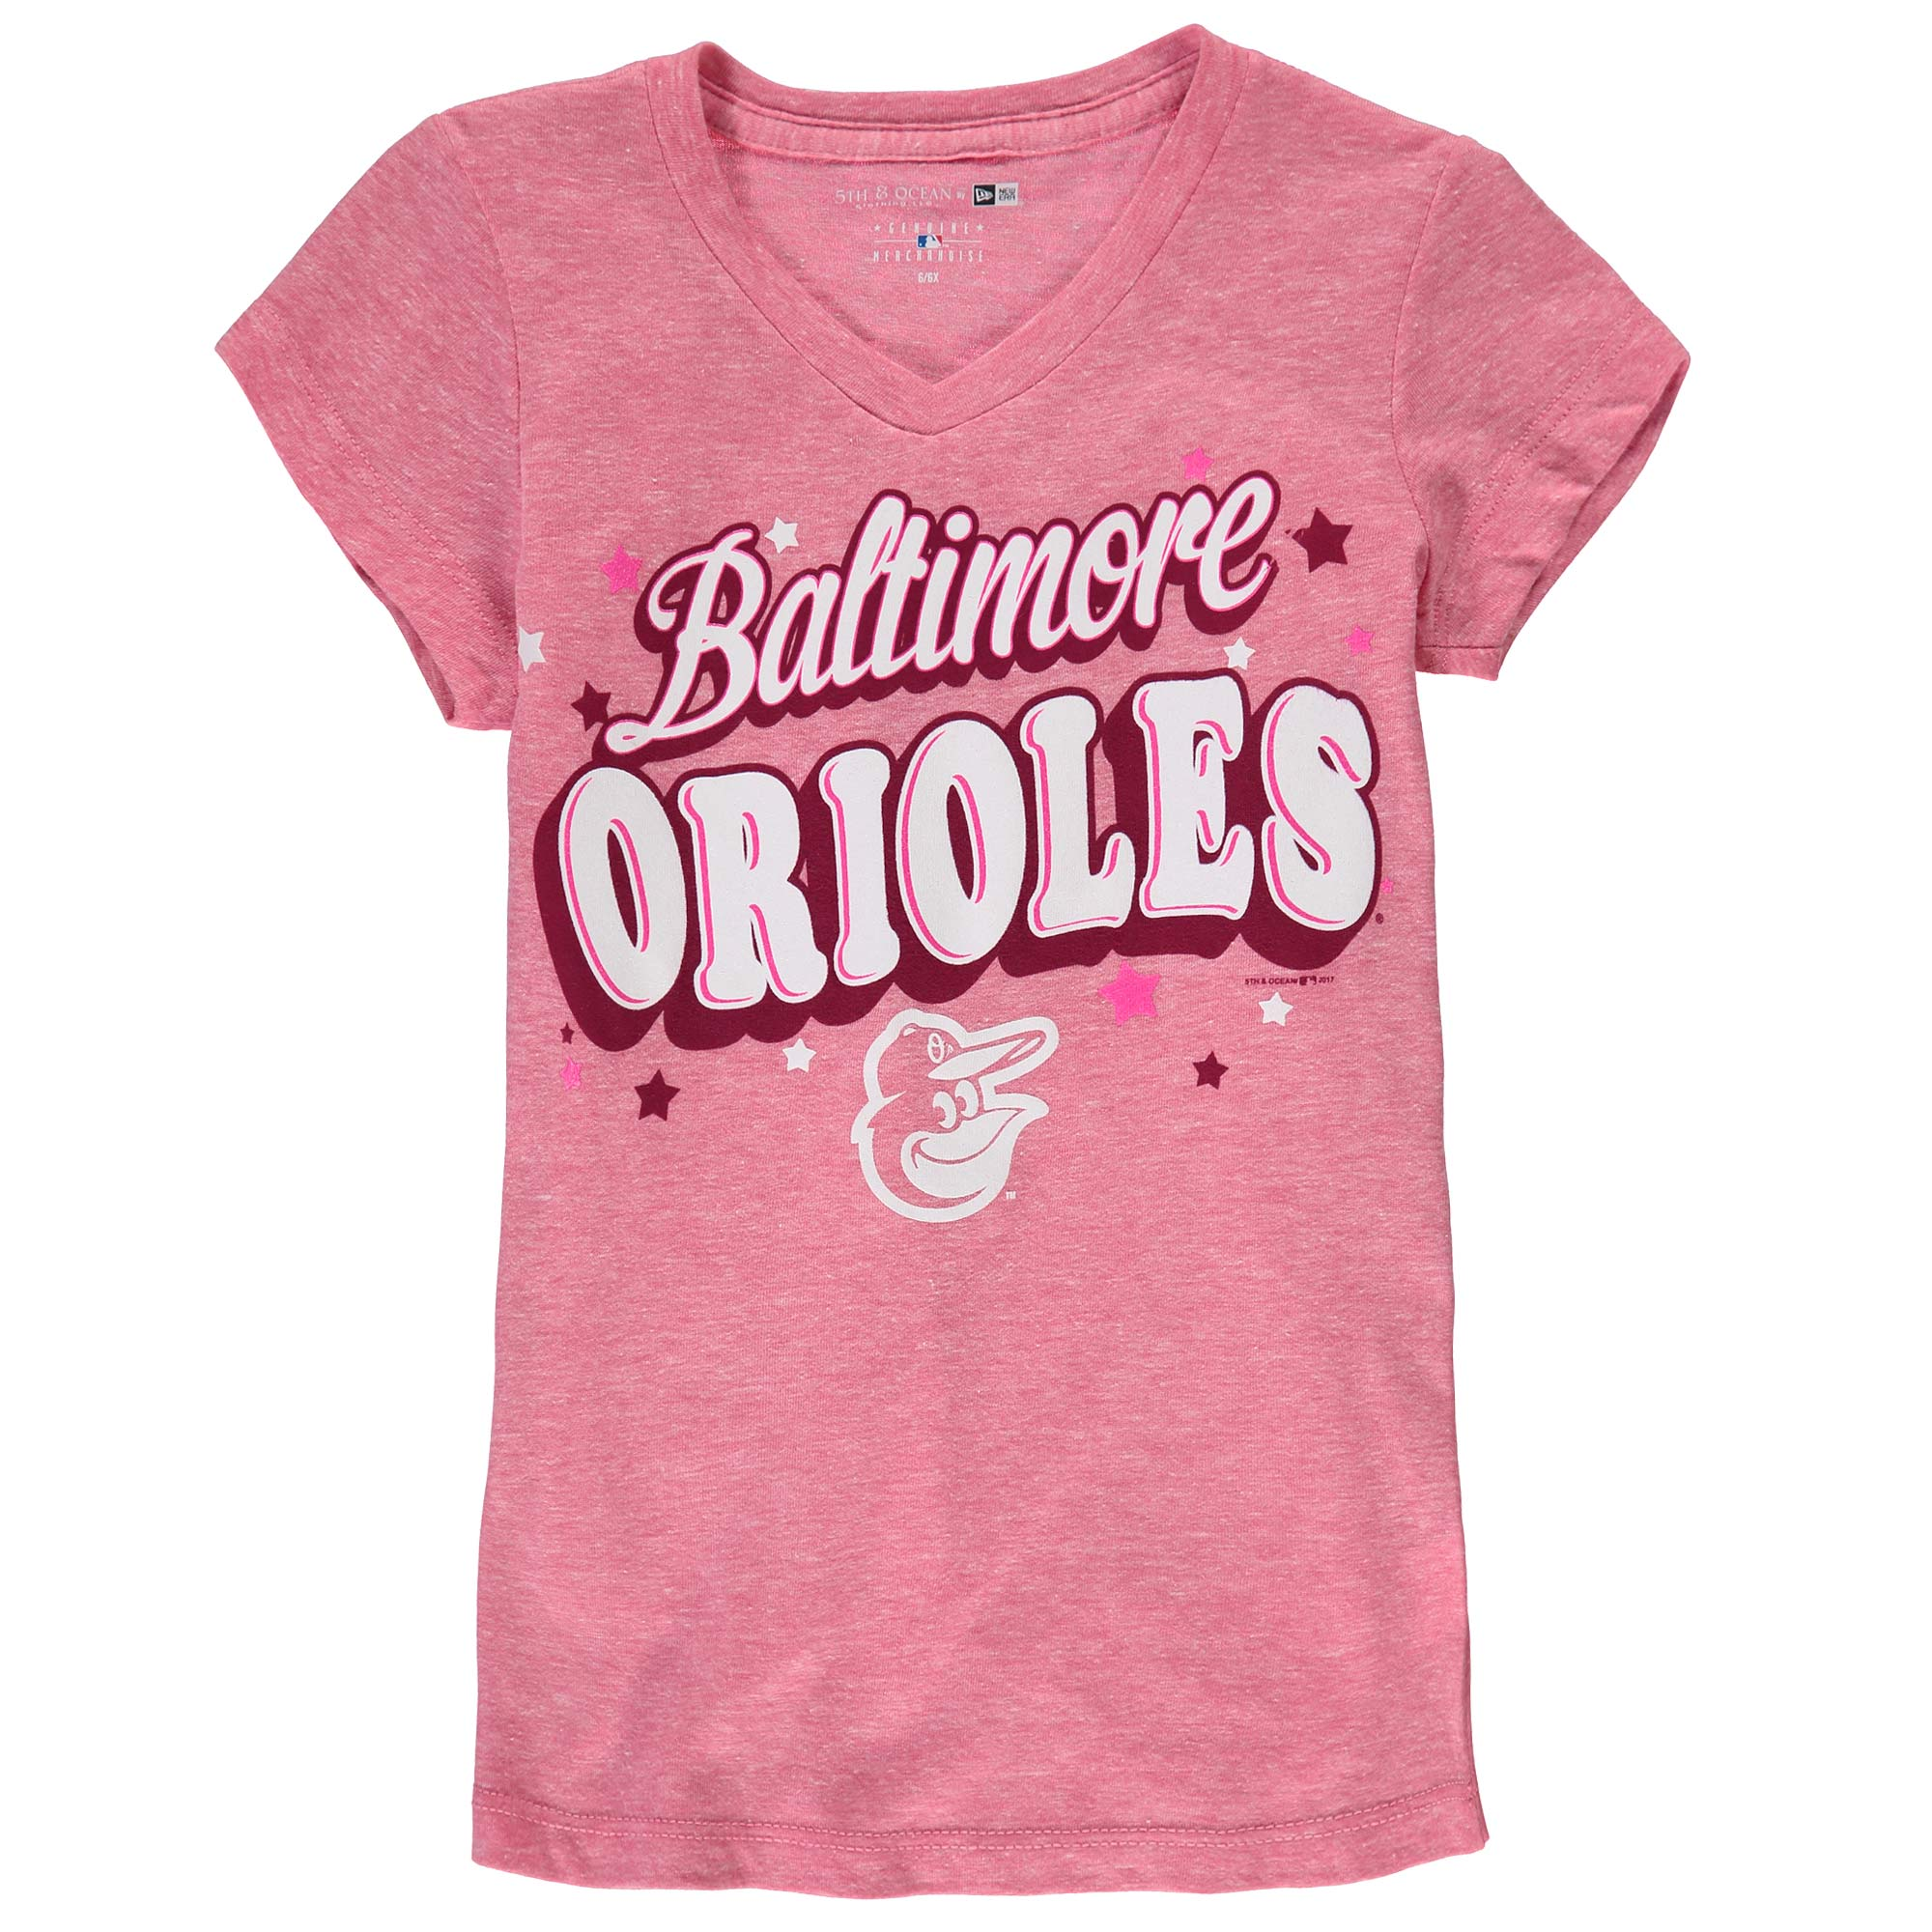 Baltimore Orioles 5th & Ocean by New Era Girls Youth Stars Tri-Blend V-Neck T-Shirt - Pink